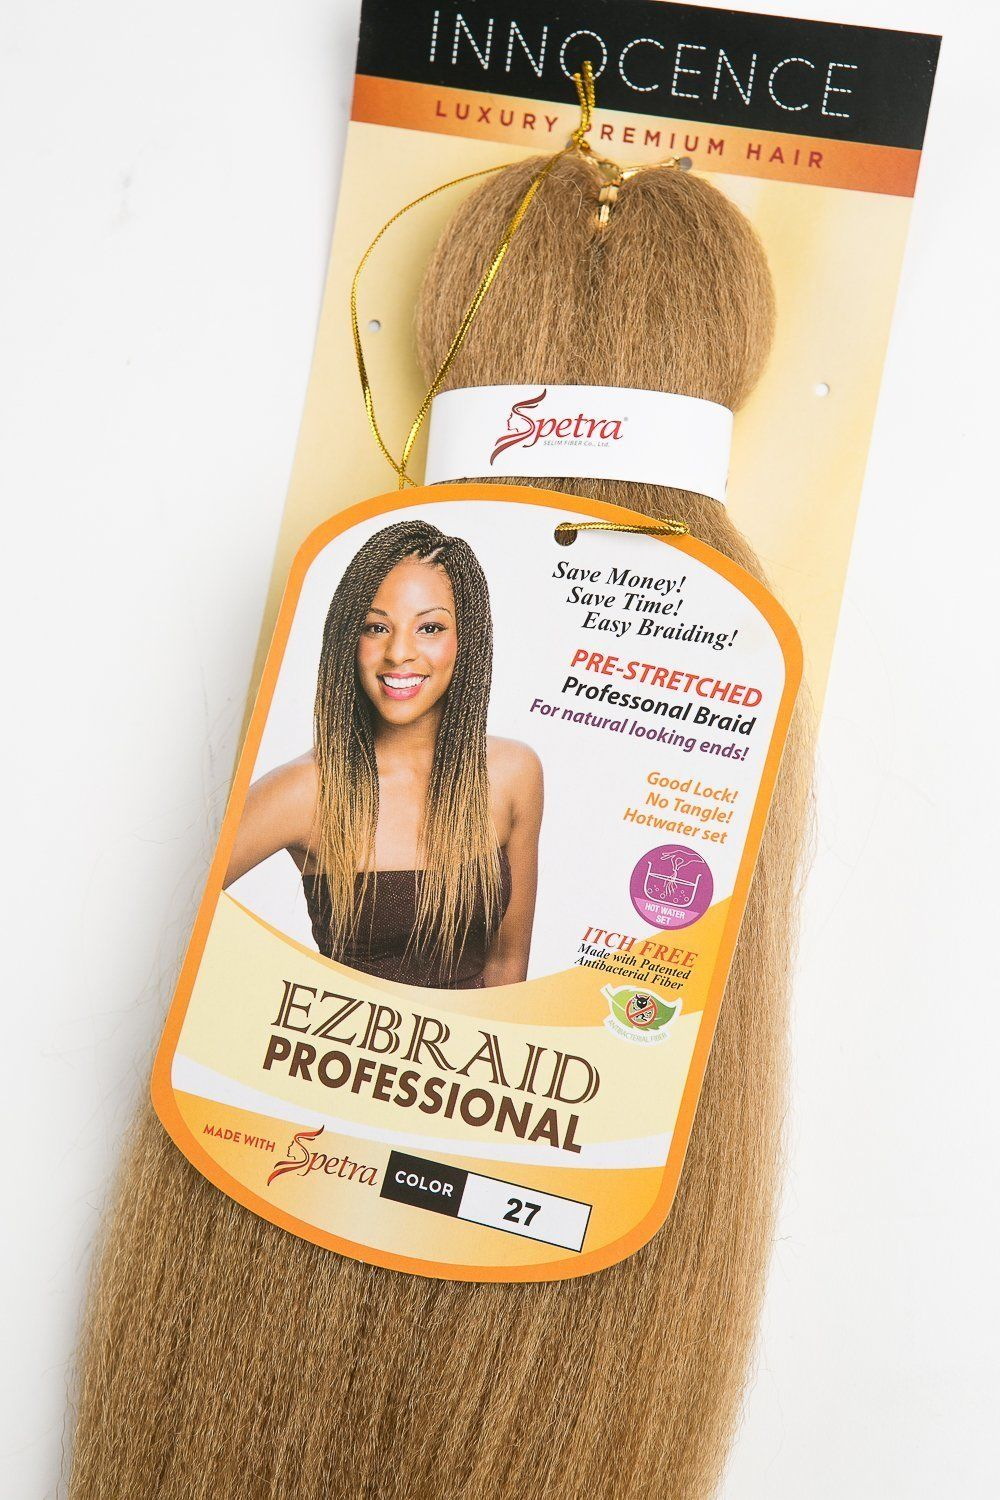 innocence ez braid prestretched easy braiding hair itch